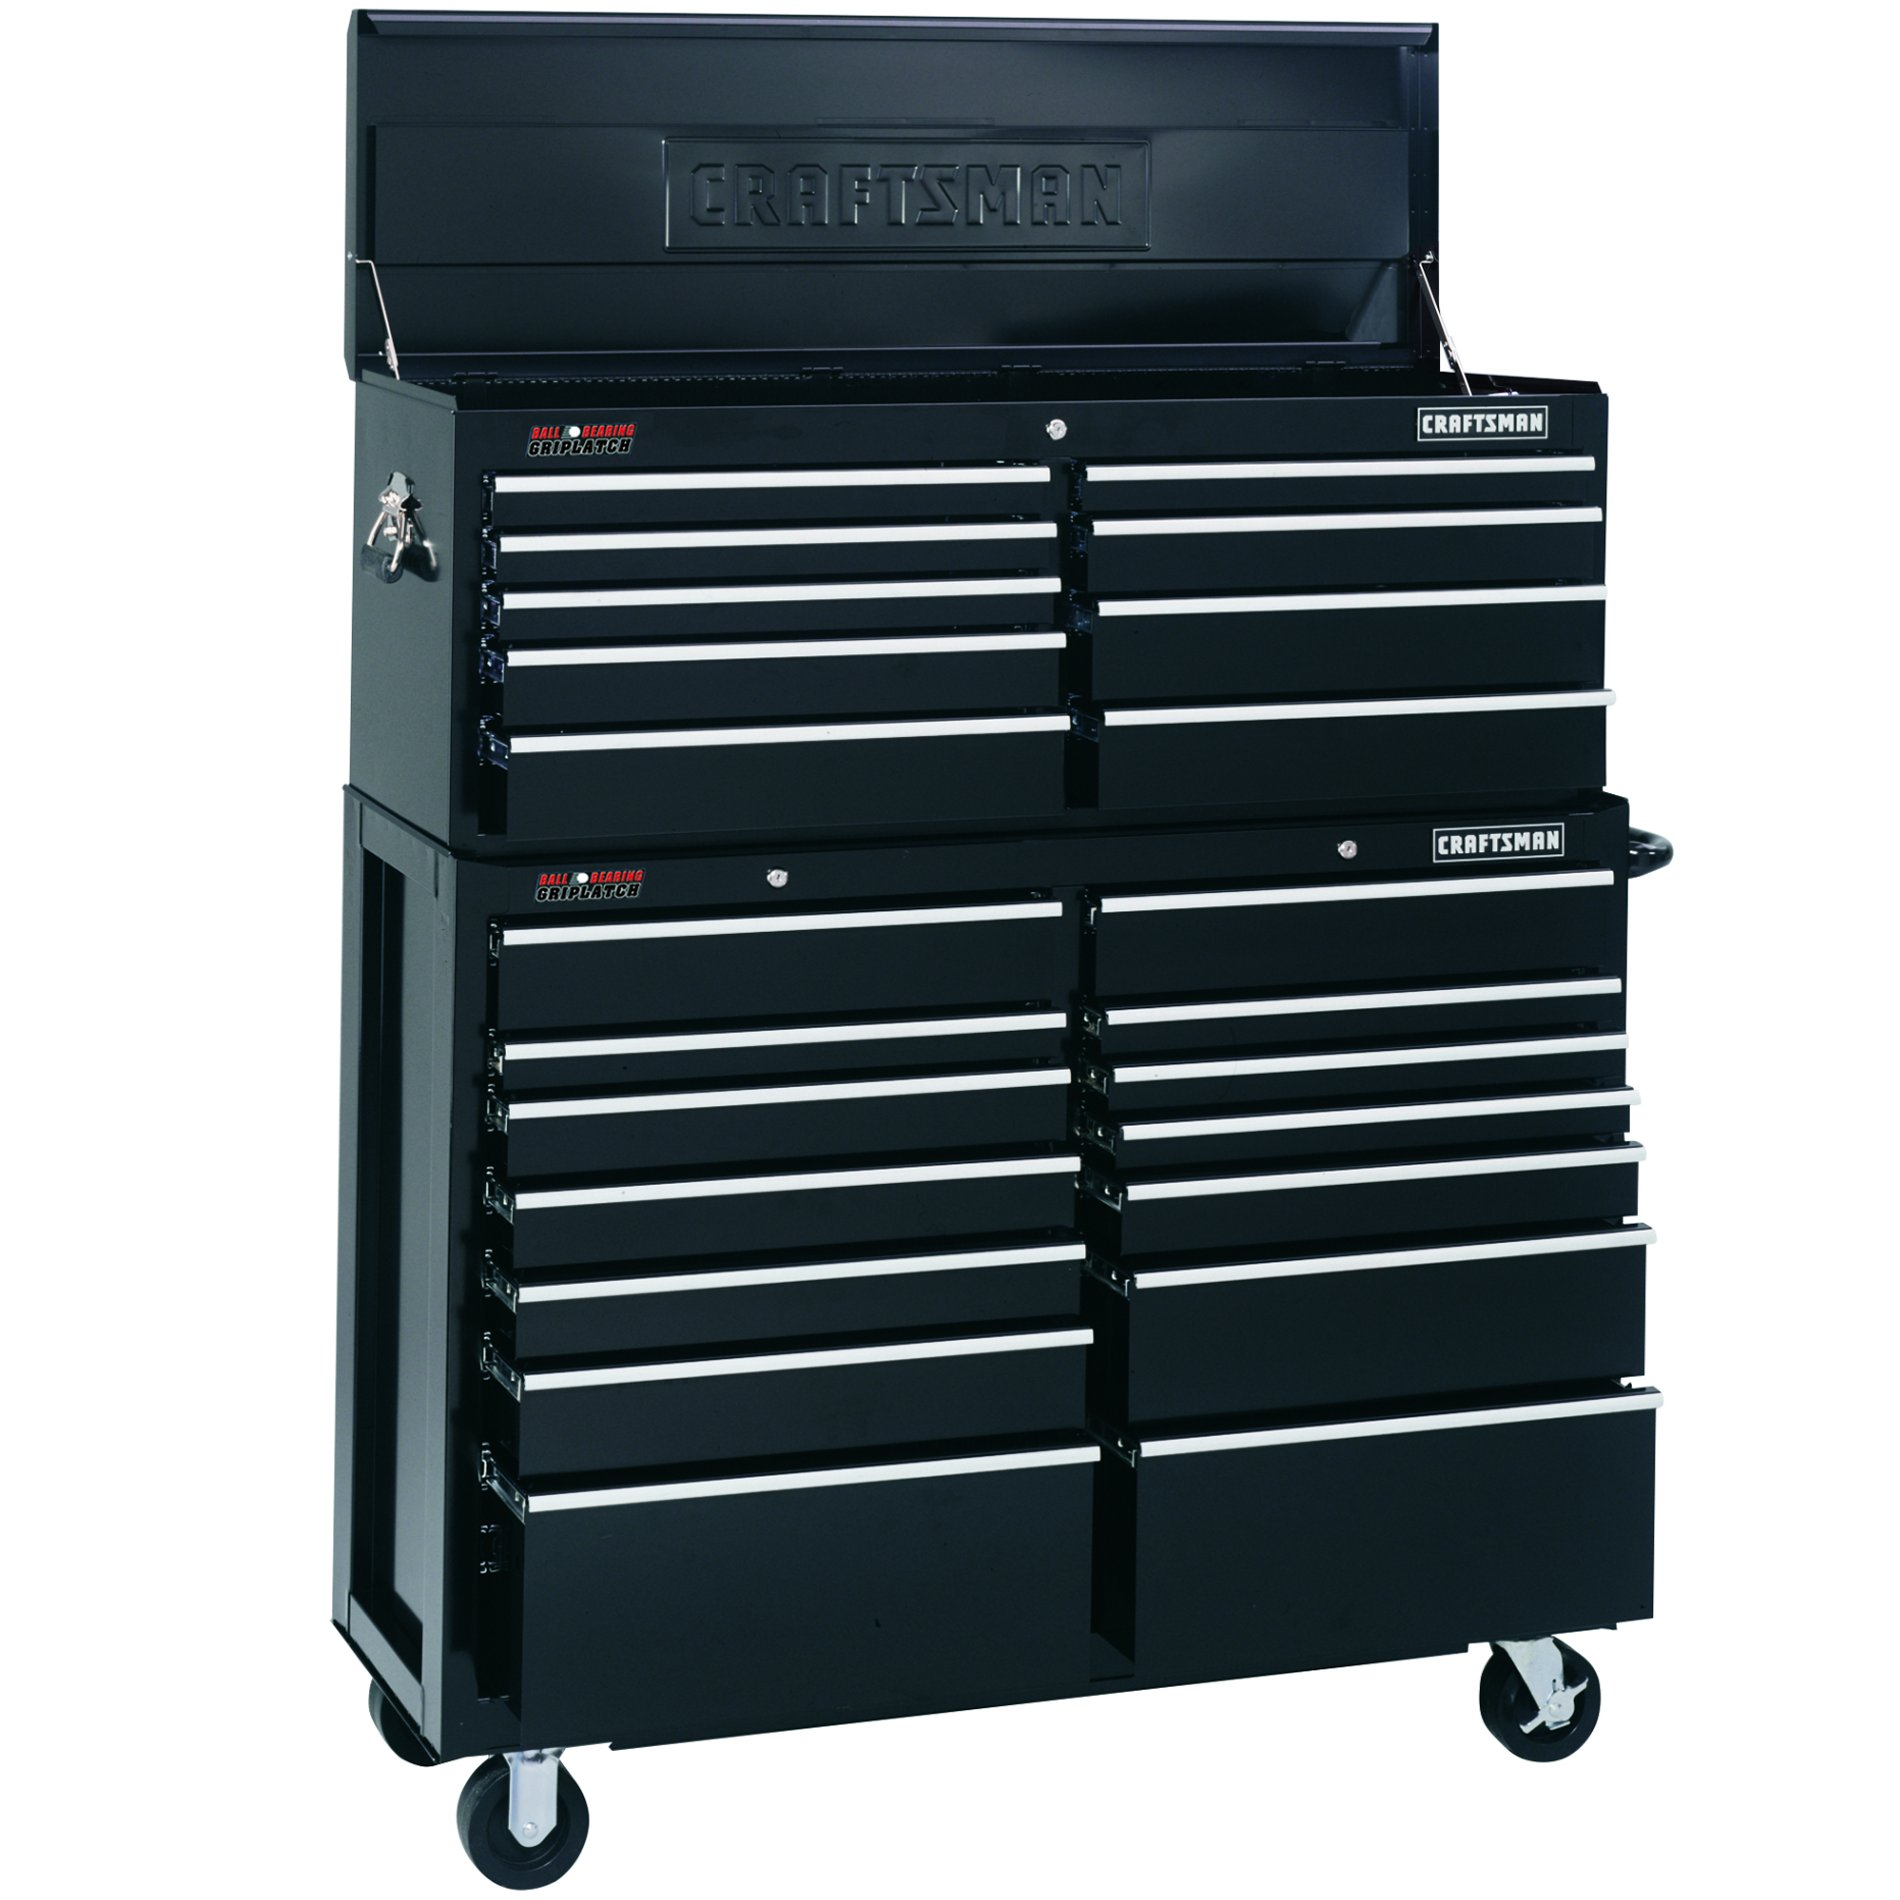 "Craftsman 51-1/4"" Wide 9-Drawer Ball-Bearing GRIPLATCH® Top Chest - Black"